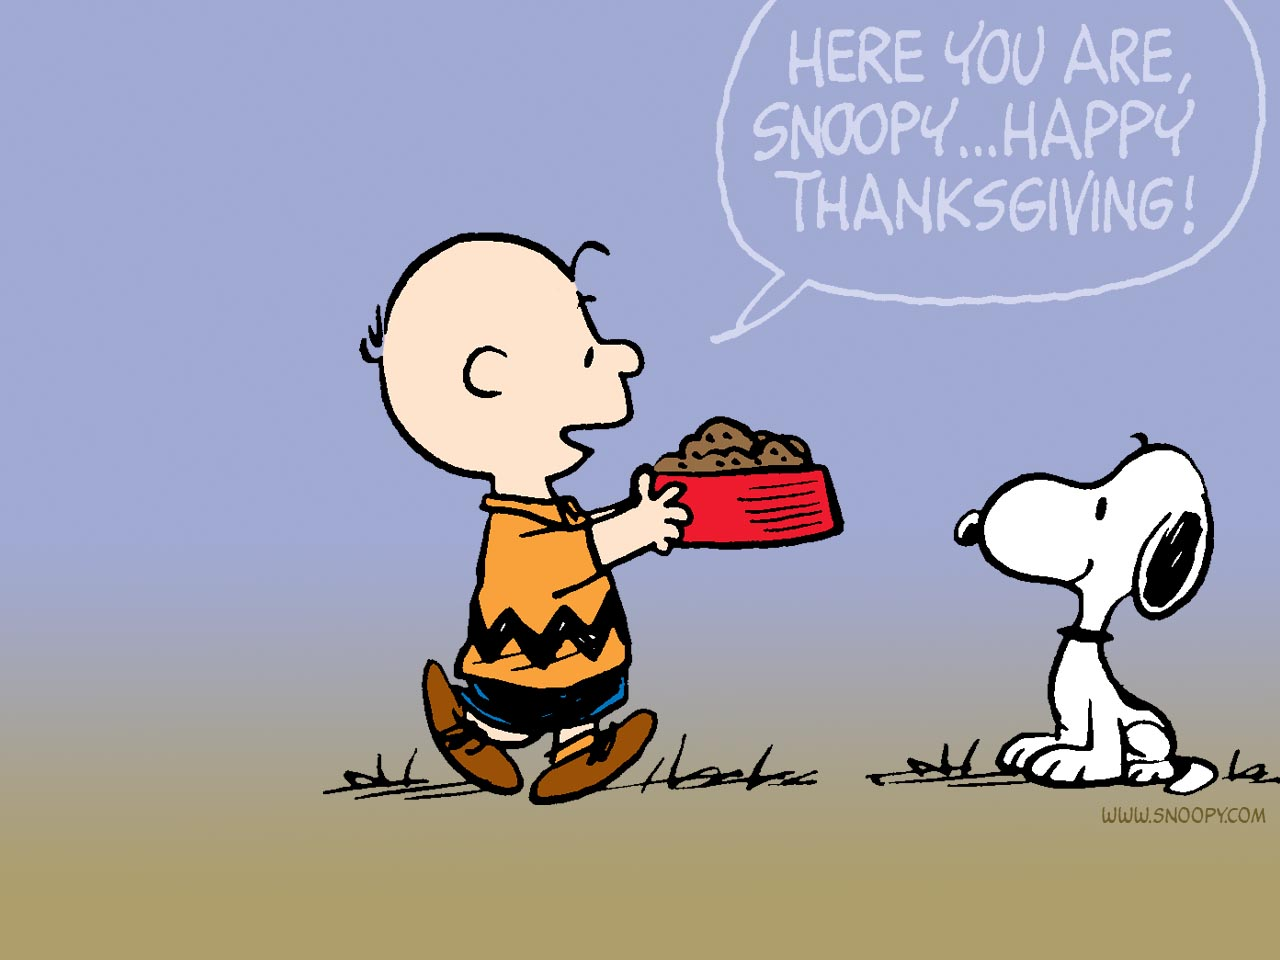 Thanksgiving wallpaper harry styles 2013 - Snoopy thanksgiving wallpaper ...